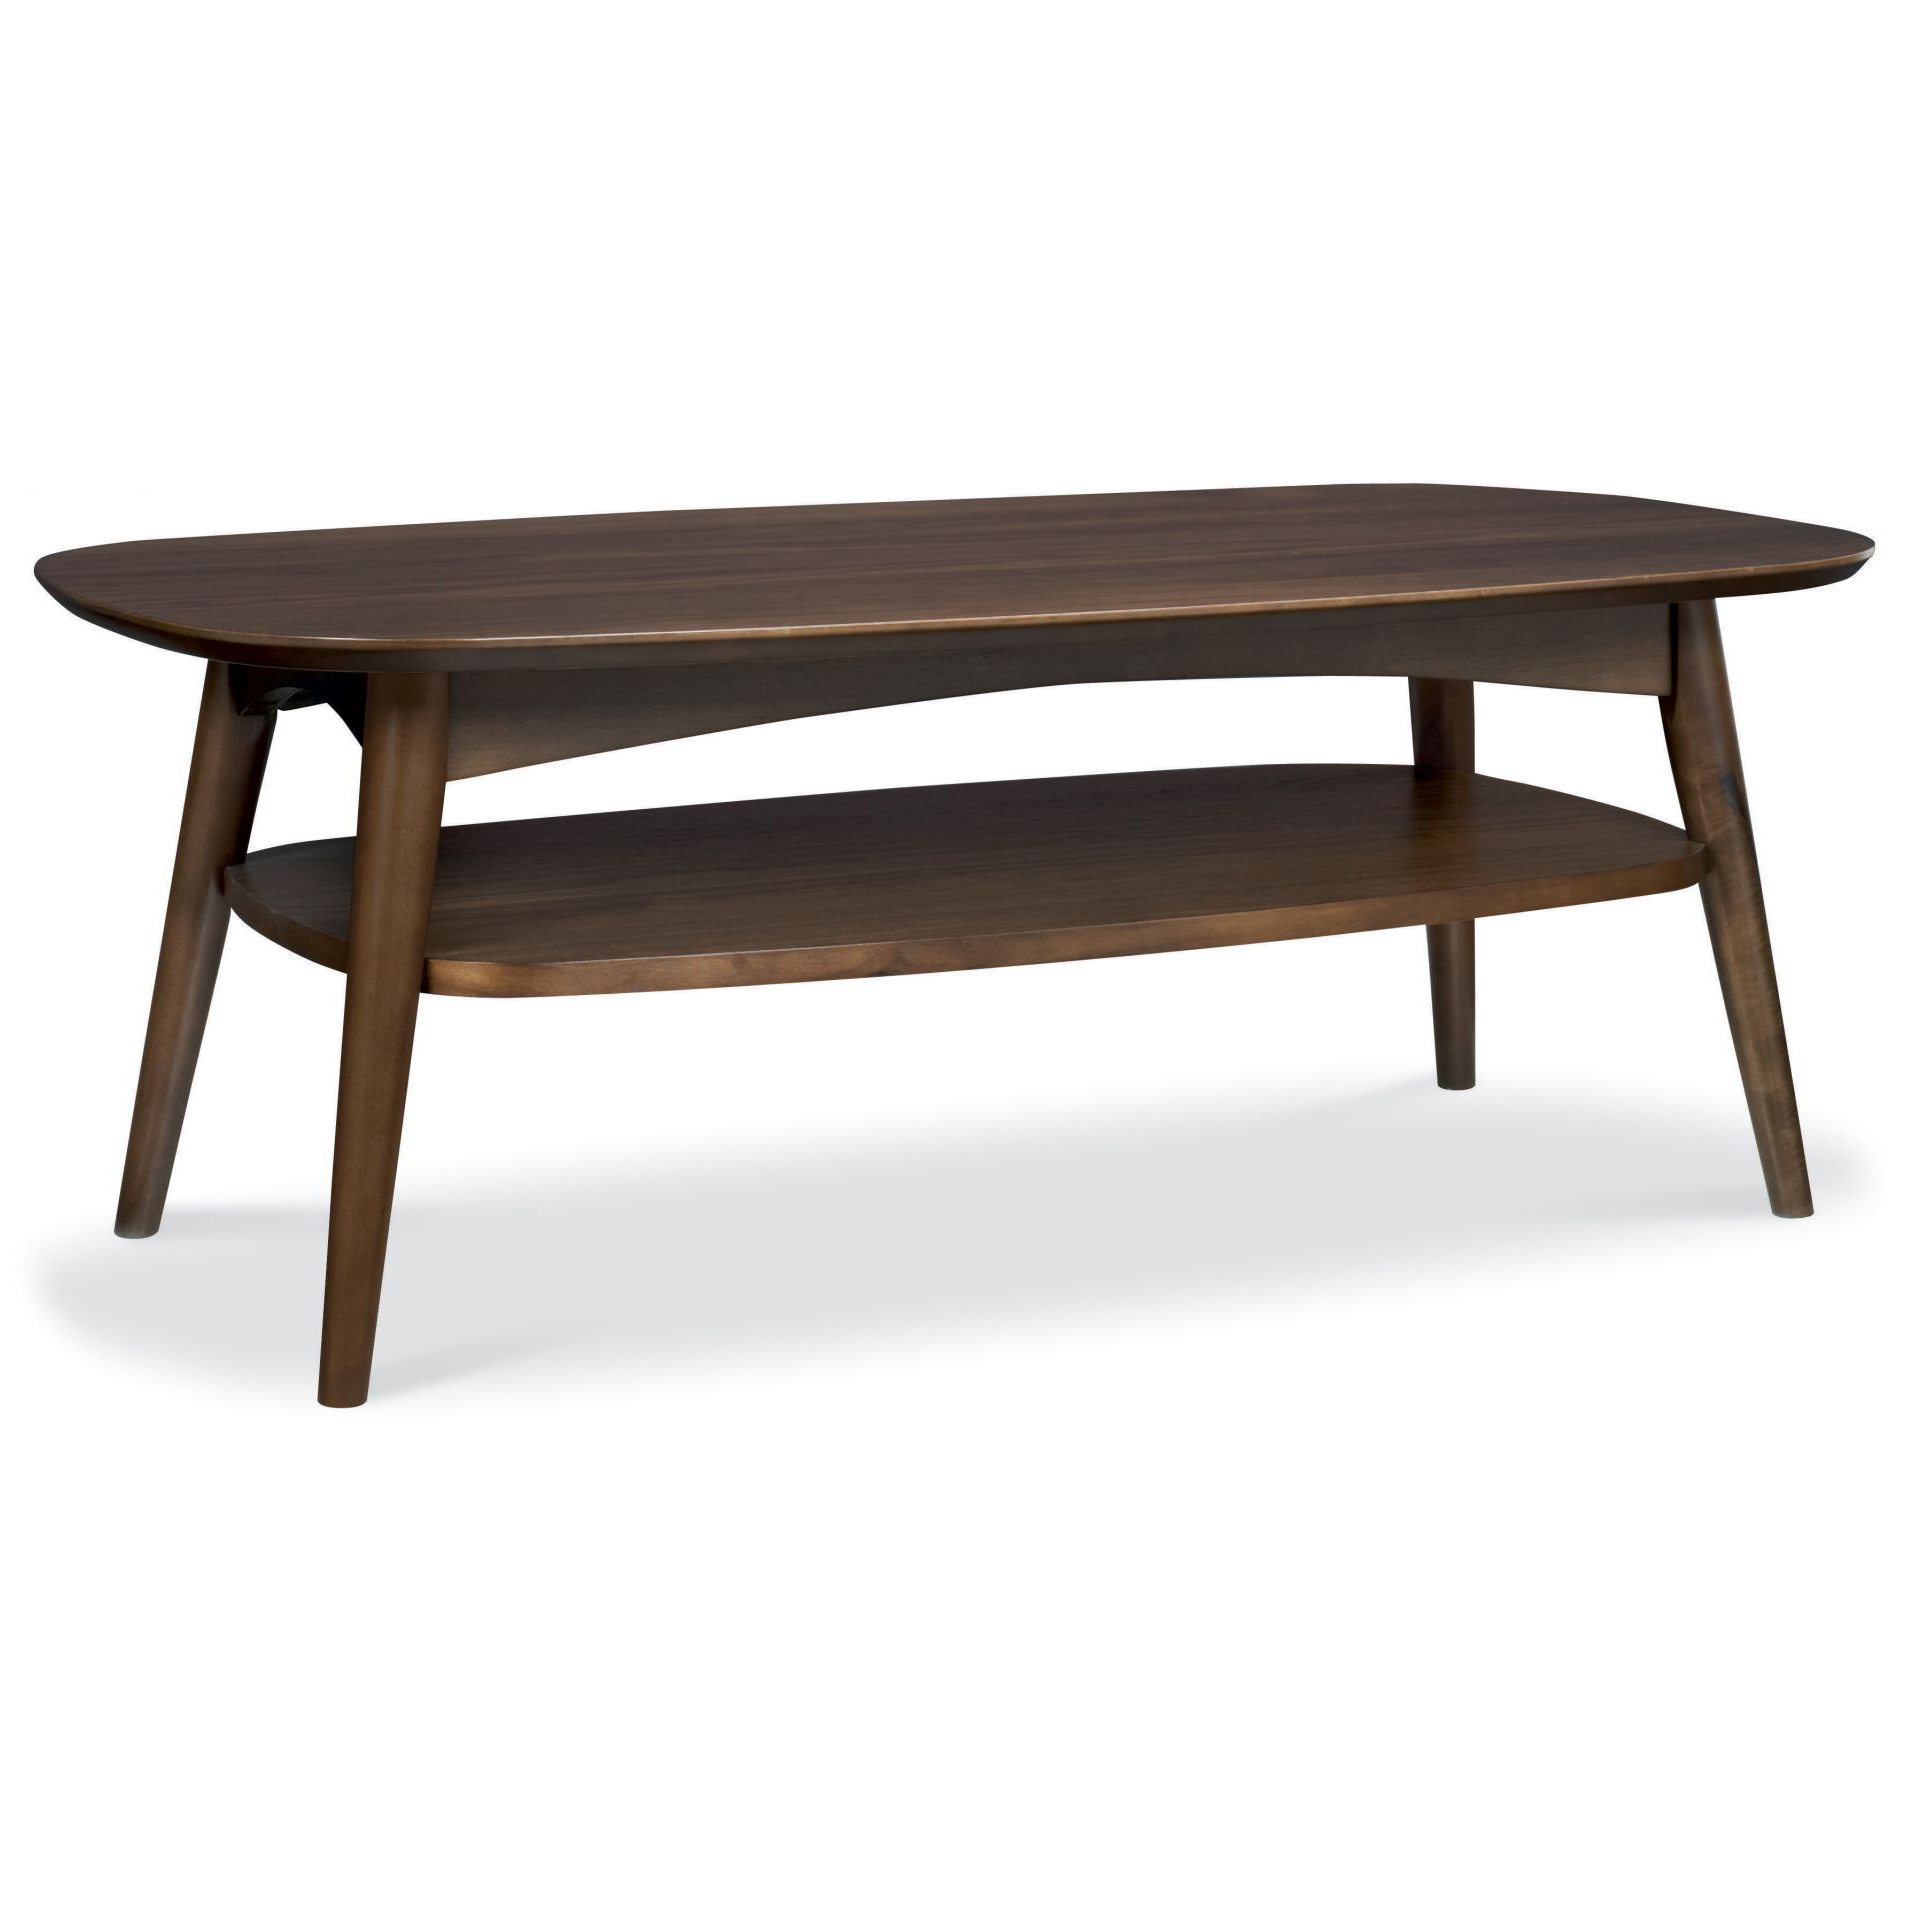 Walnut Oval Coffee Table Uk: Oslo Walnut Coffee Table With Shelf